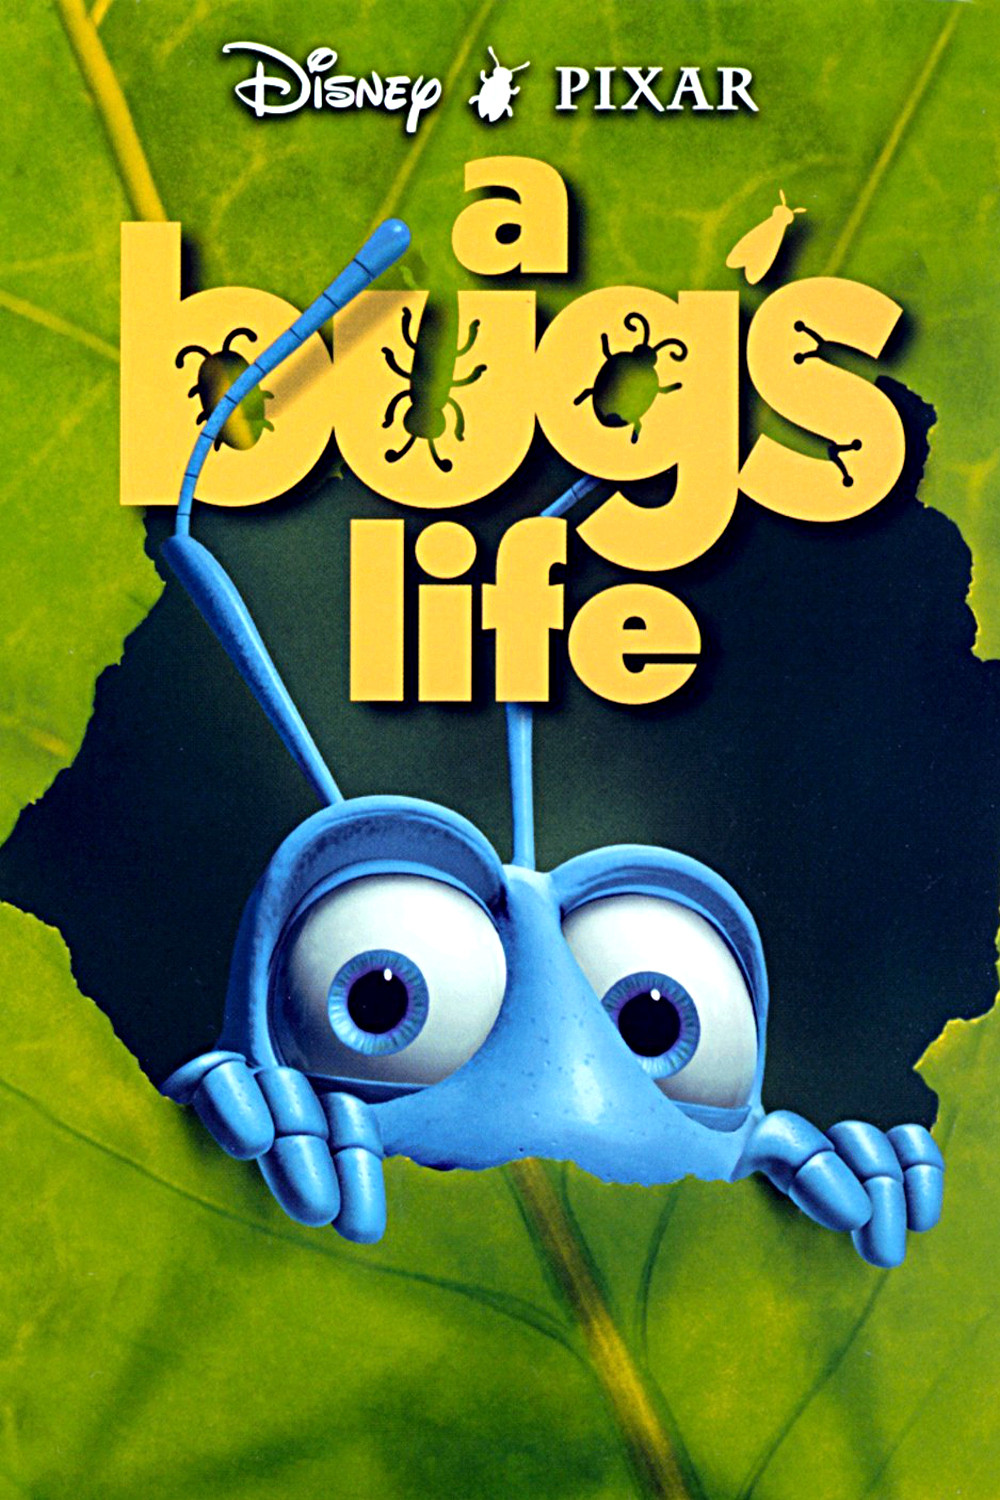 A Bugu0026#39;s Life movie poster